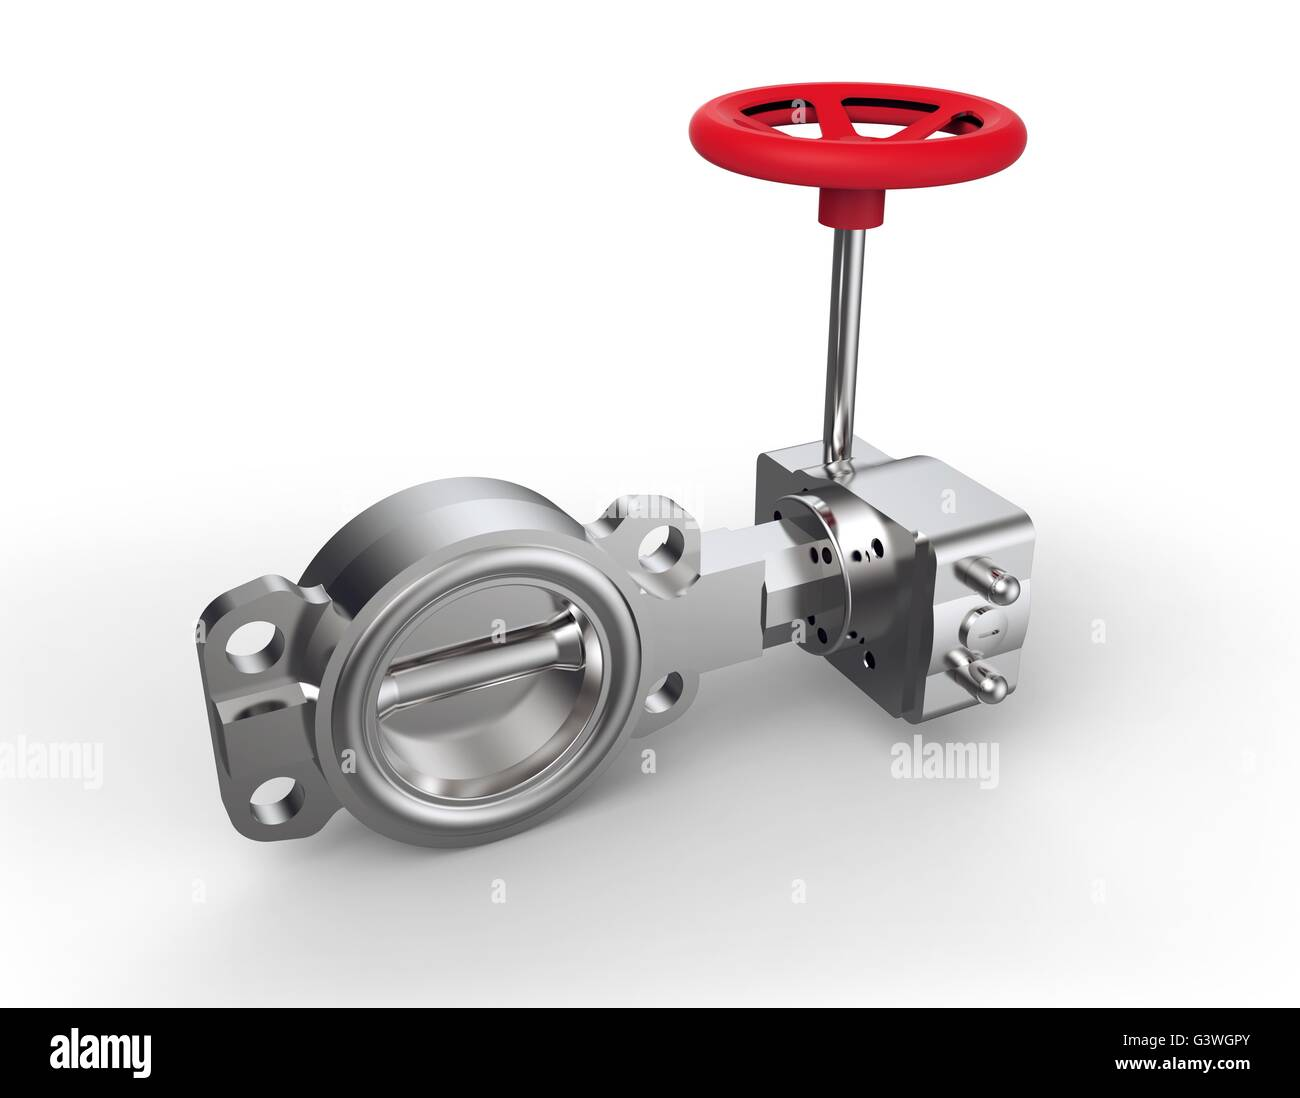 Red valve isolated on a white back ground. - Stock Image